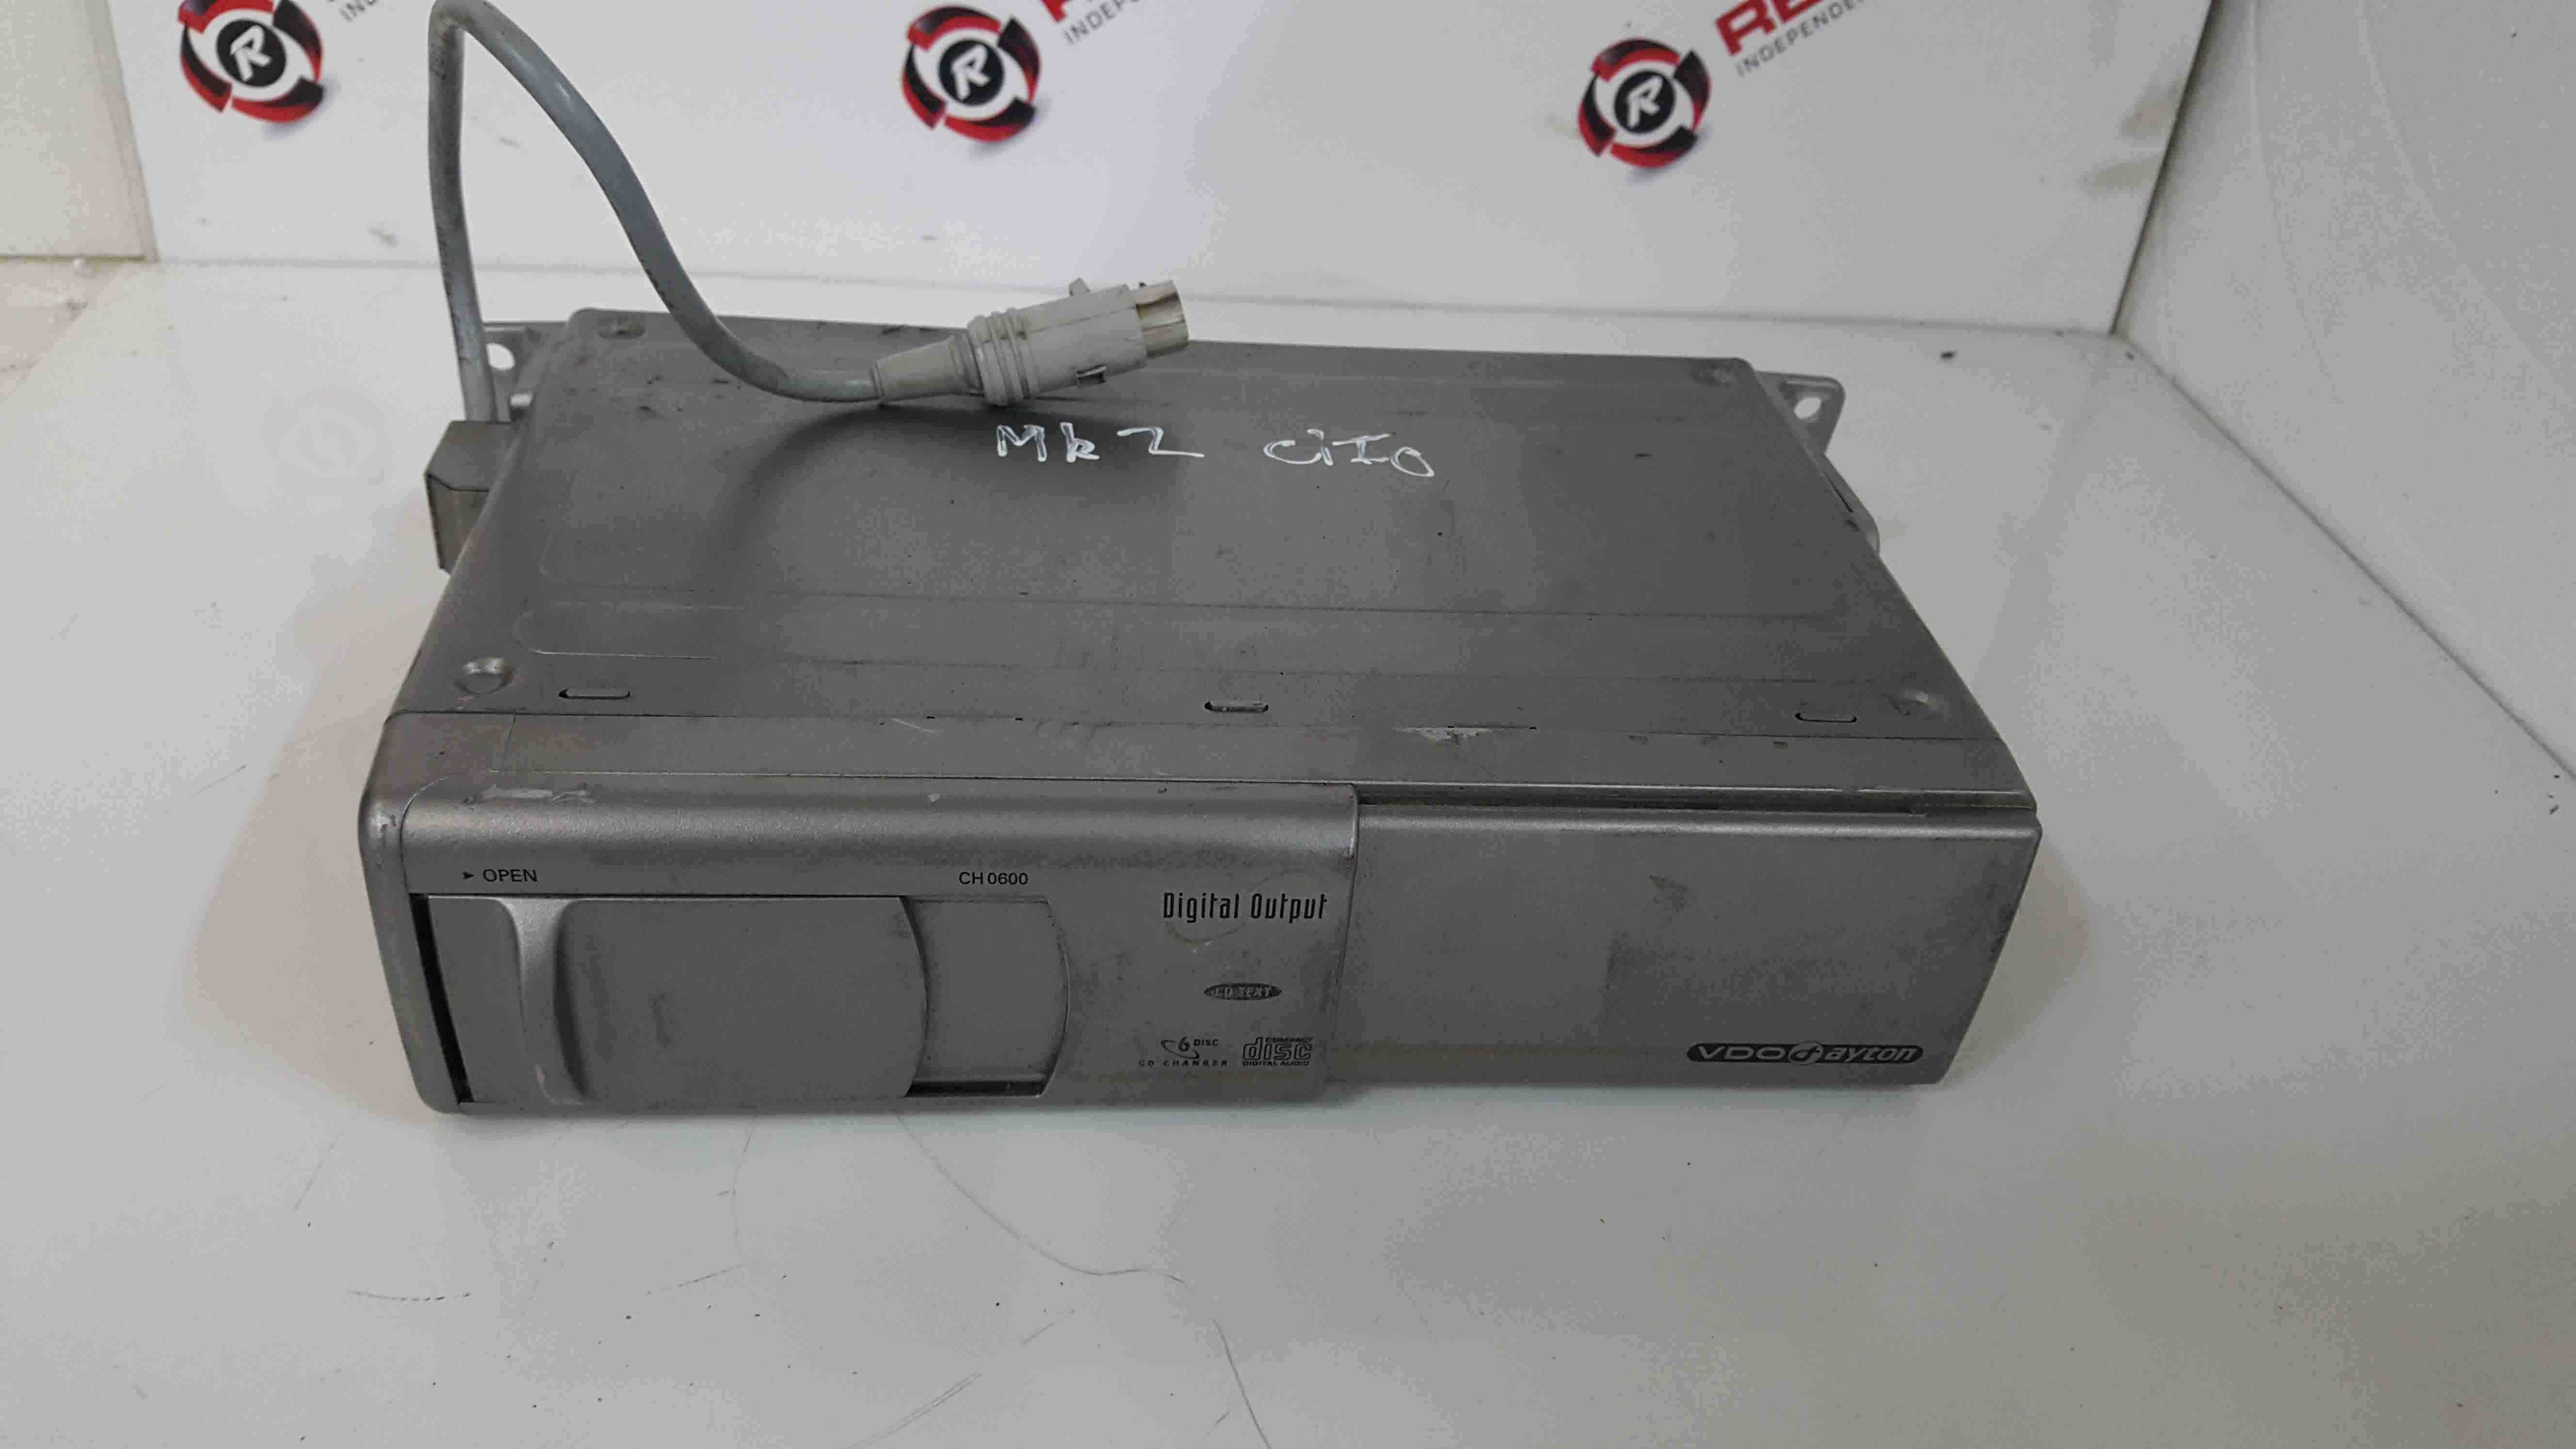 Renault Clio MK2 1998-2001 VDO 6 Disc CD Changer Cartridge CH0600 00